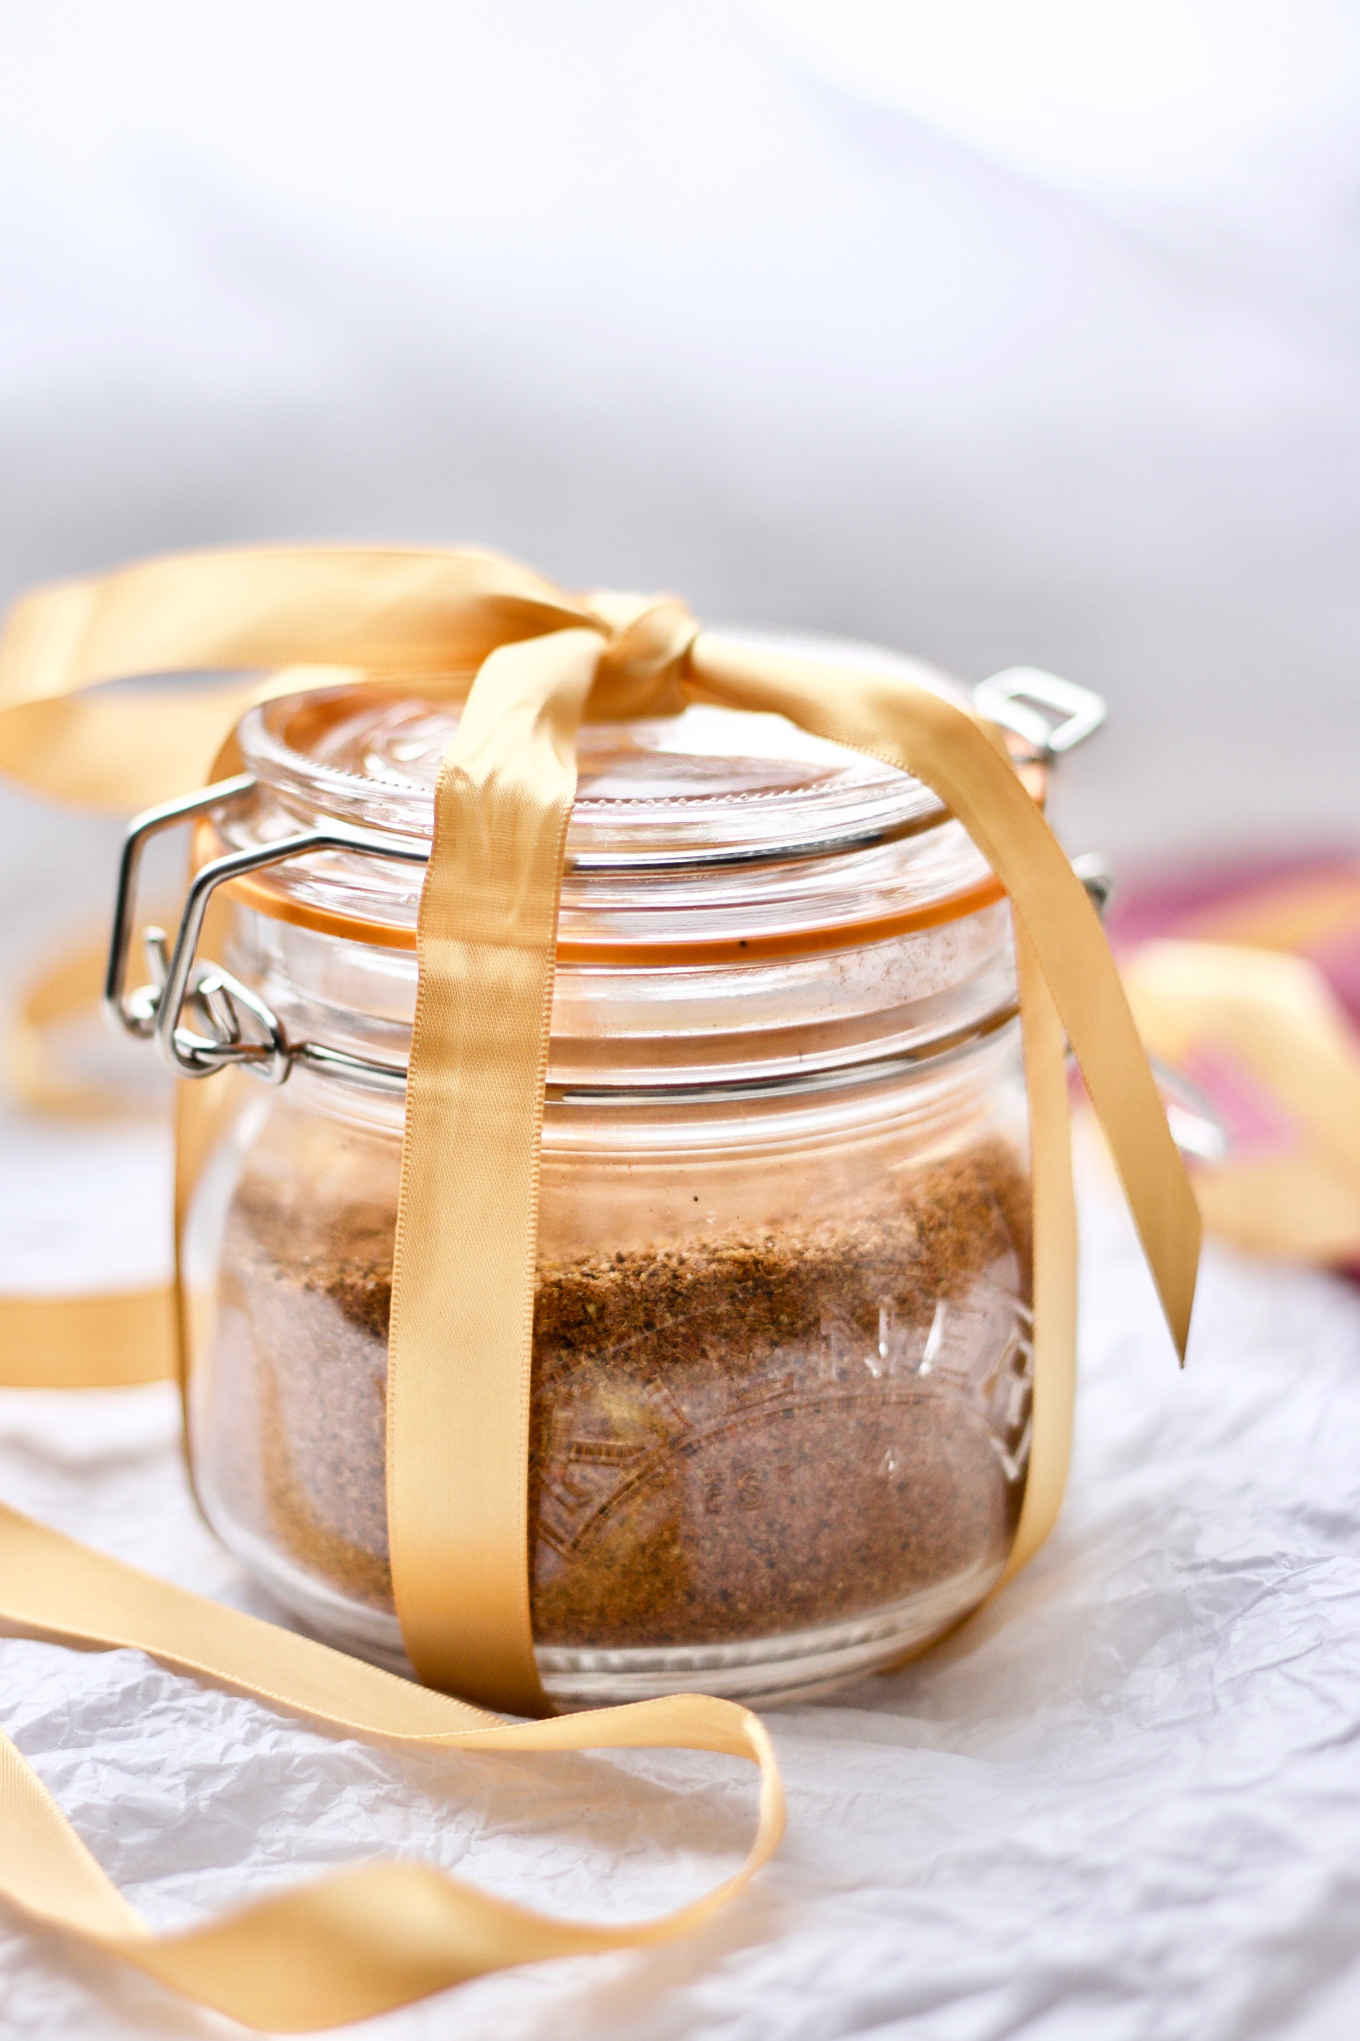 My family favourite paleo dry rub beautifully packed in a glass jar and wrapped as a Christmas present. Use 1tbsp of the blend for each pound of paleo baked ribs.